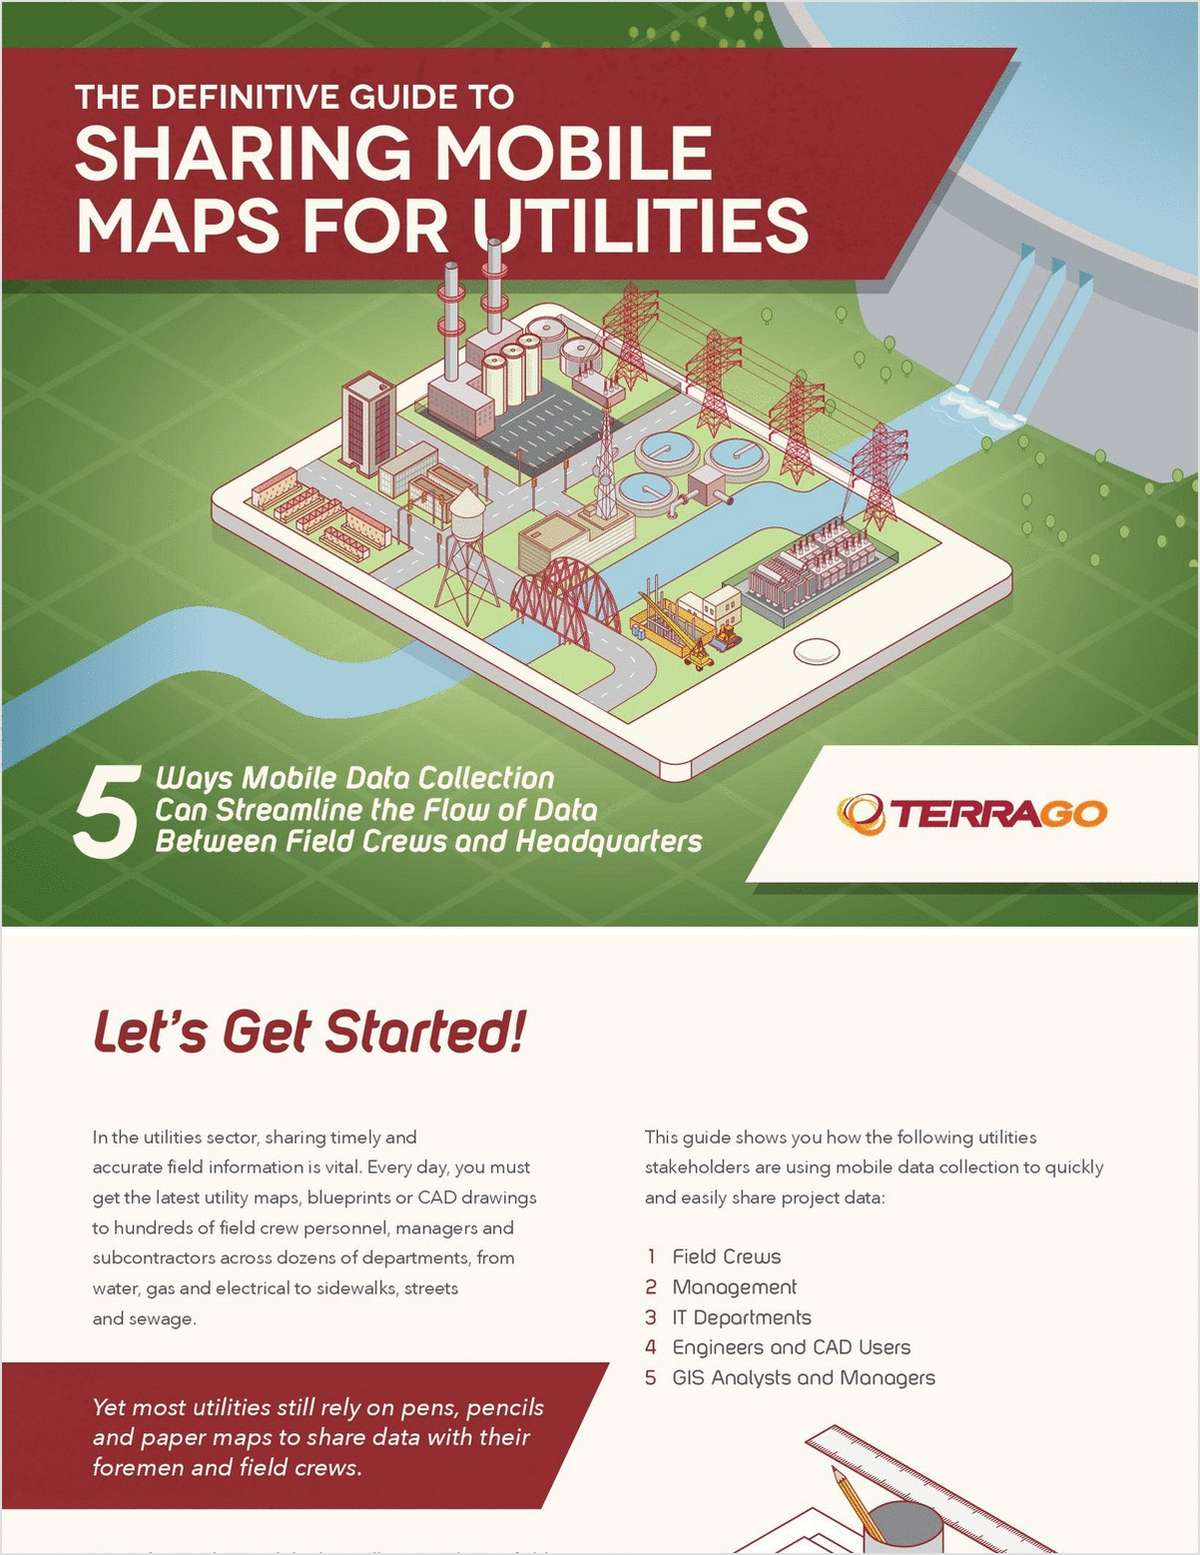 The Definitive Guide to Sharing Mobile Maps for Utilities